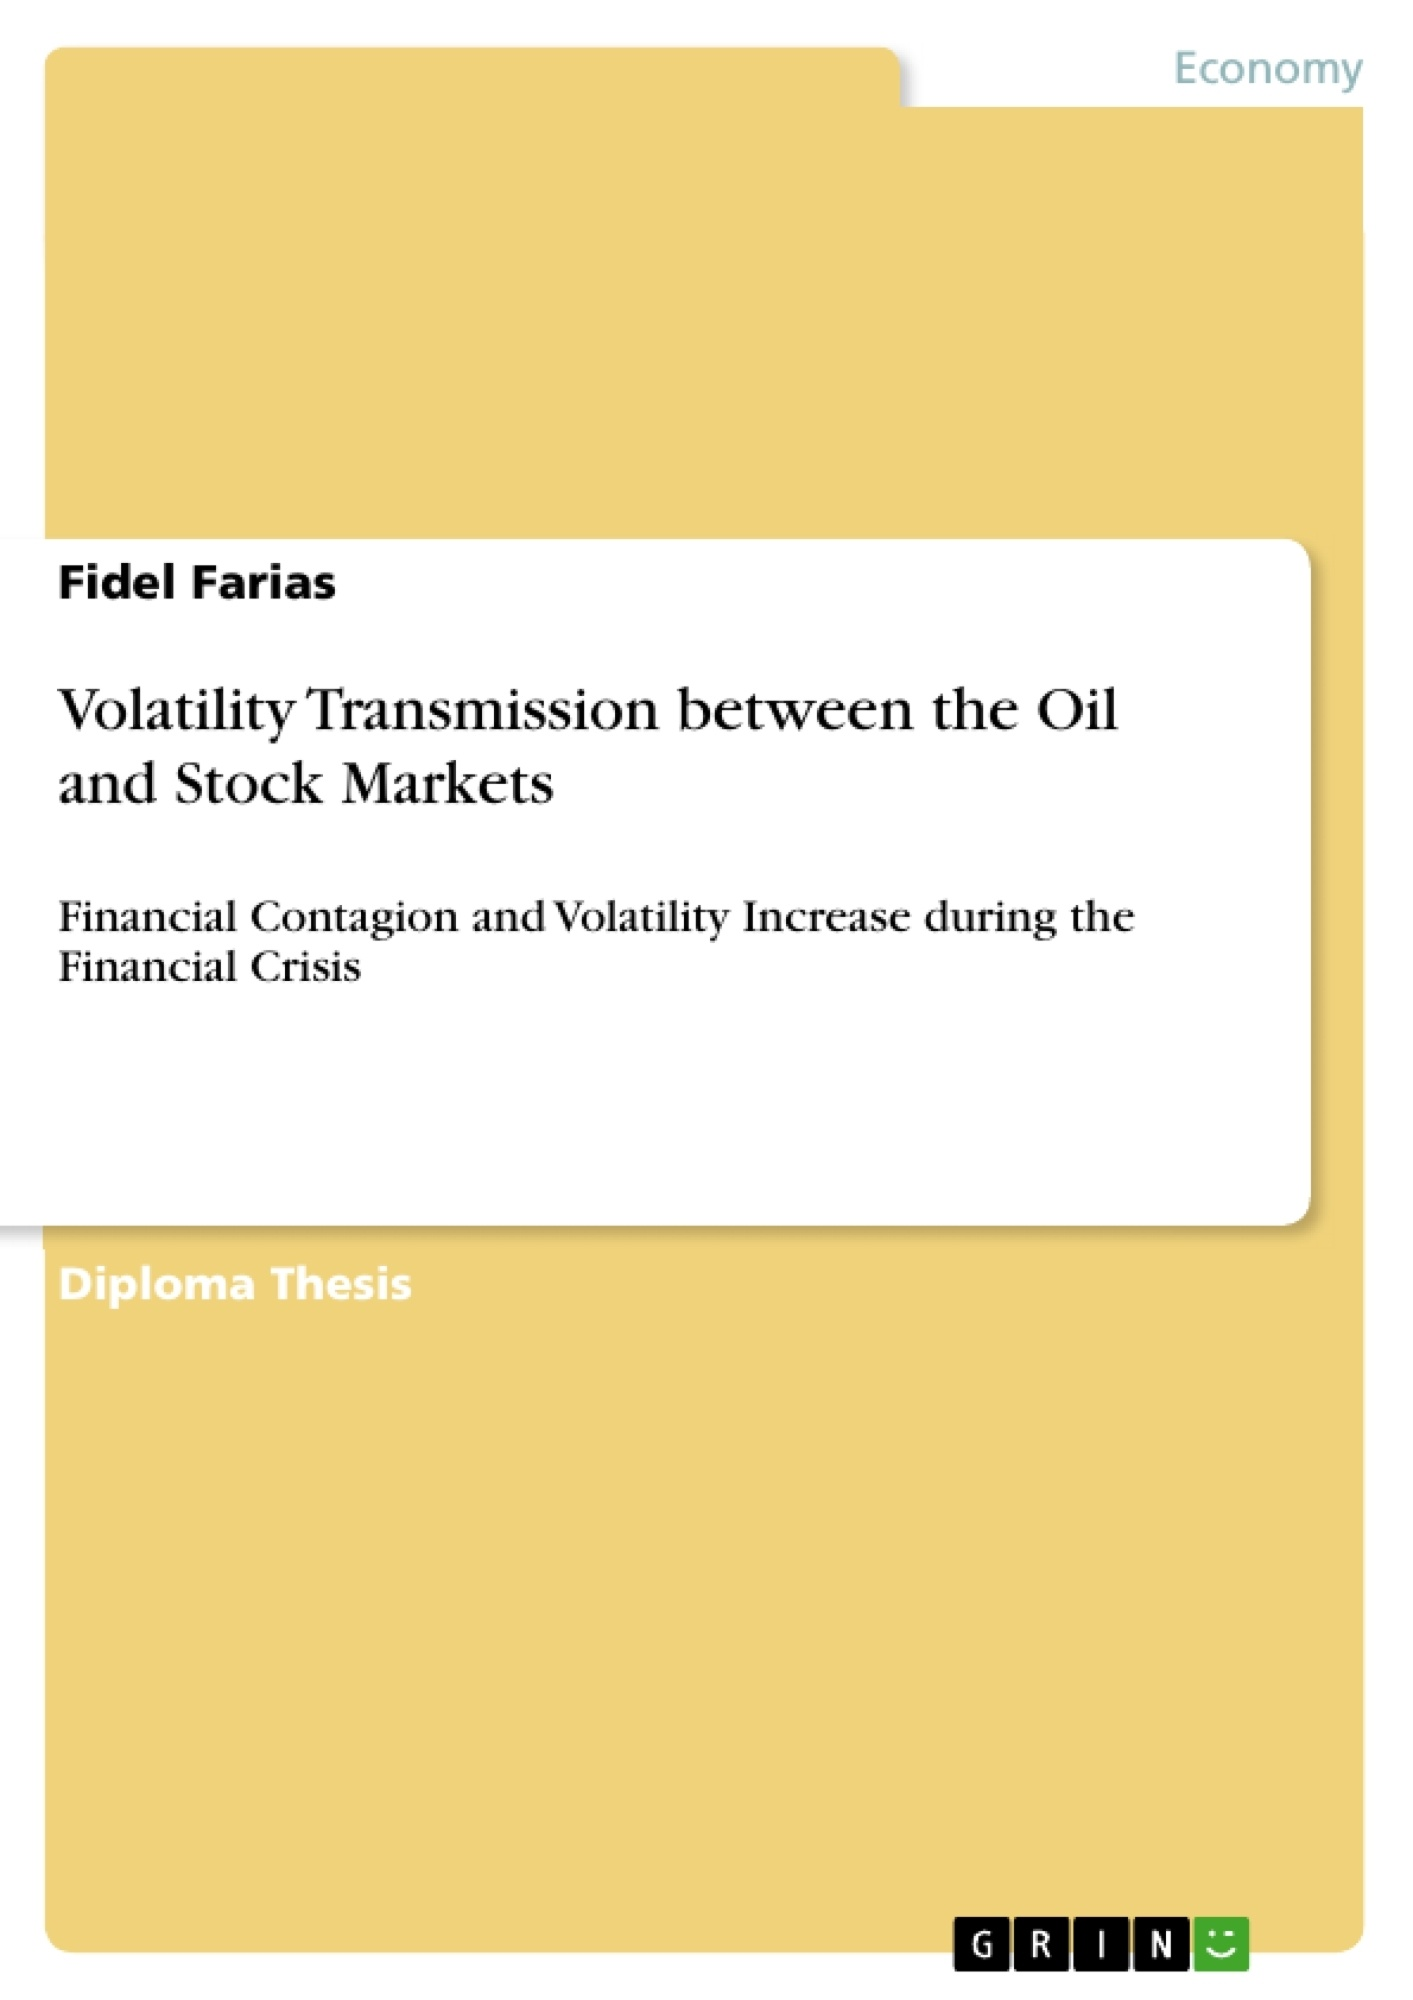 Title: Volatility Transmission between the  Oil and Stock Markets